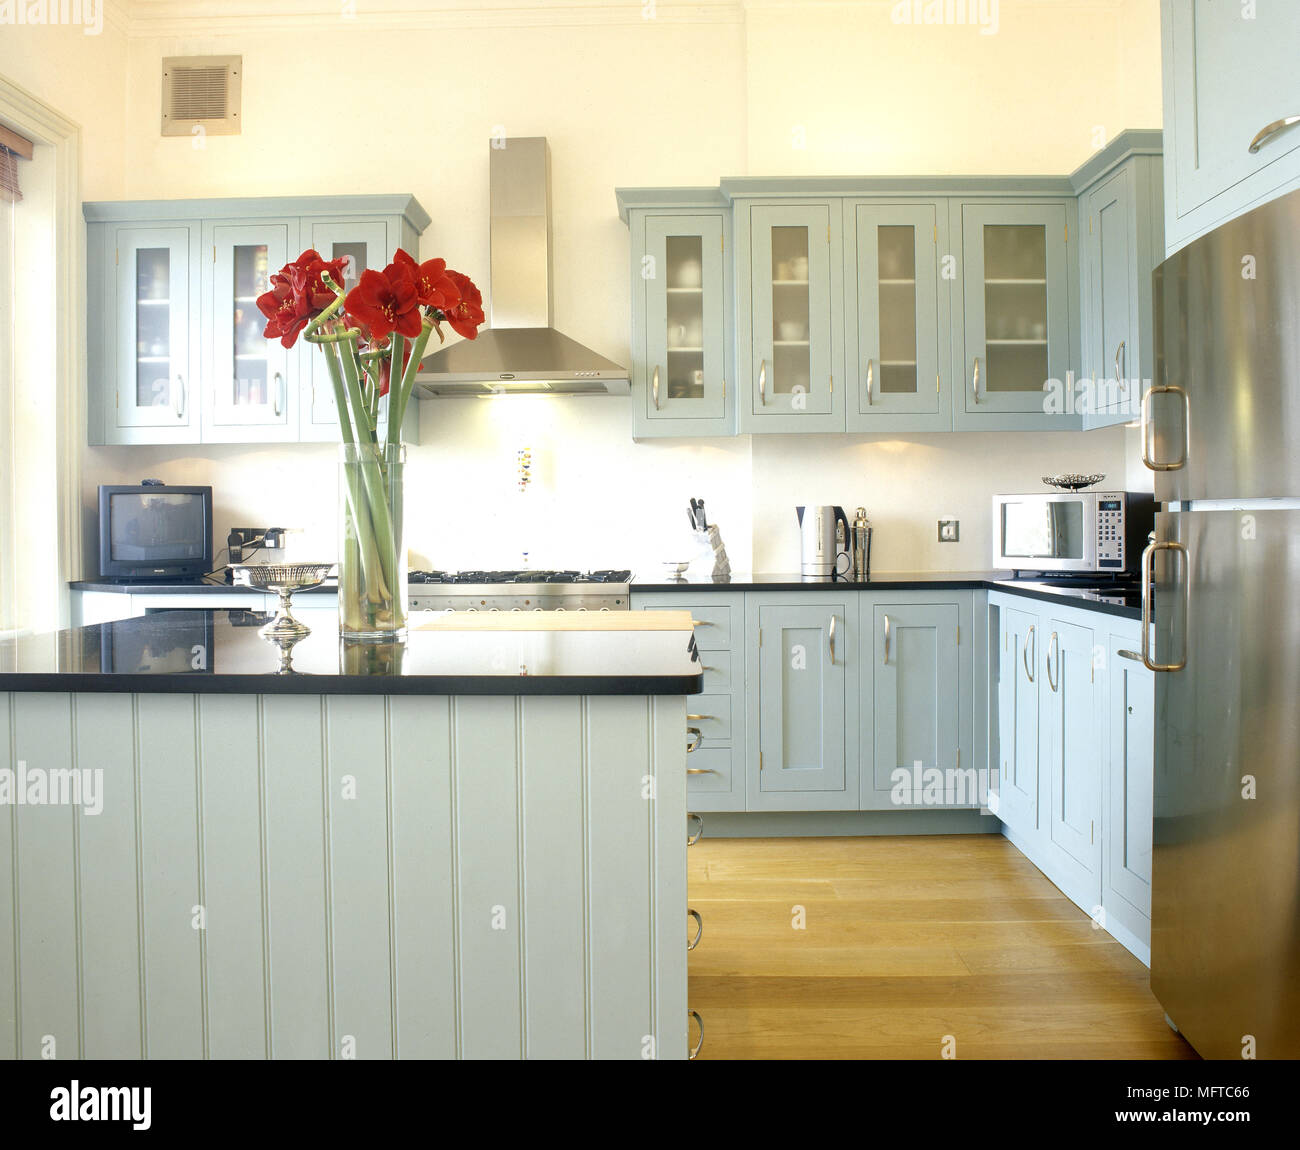 Modern Country Kitchen With Green Painted Glass Front Cabinets Central Island And Wood Floor Stock Photo Alamy